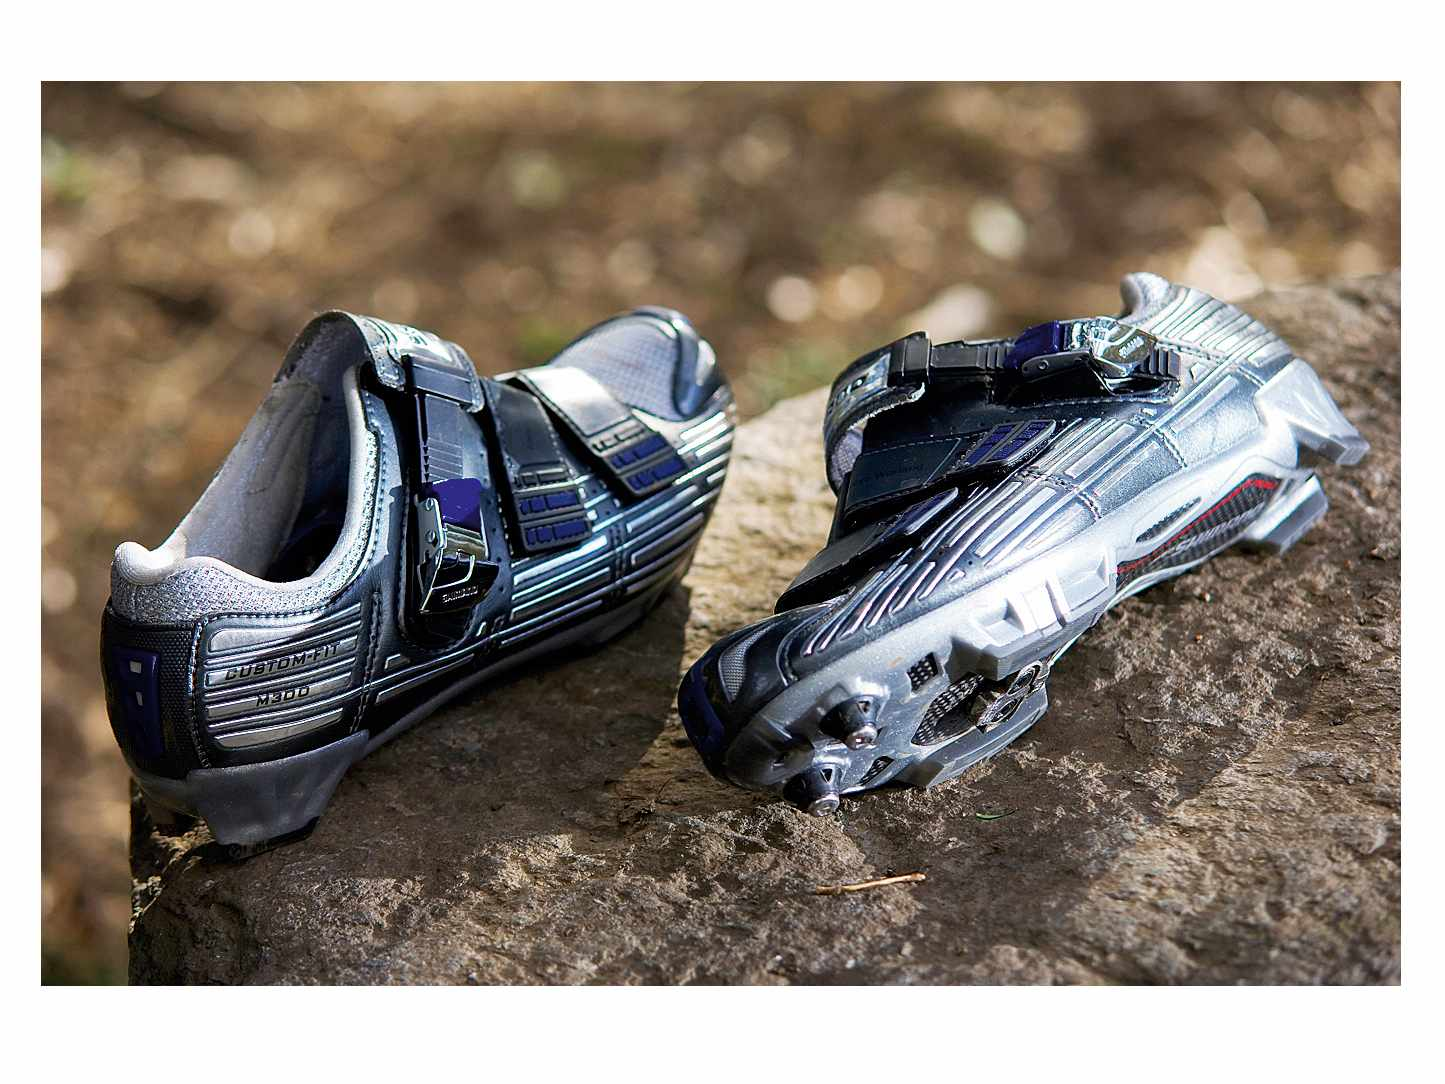 Cool shoe cooked up by Shimano